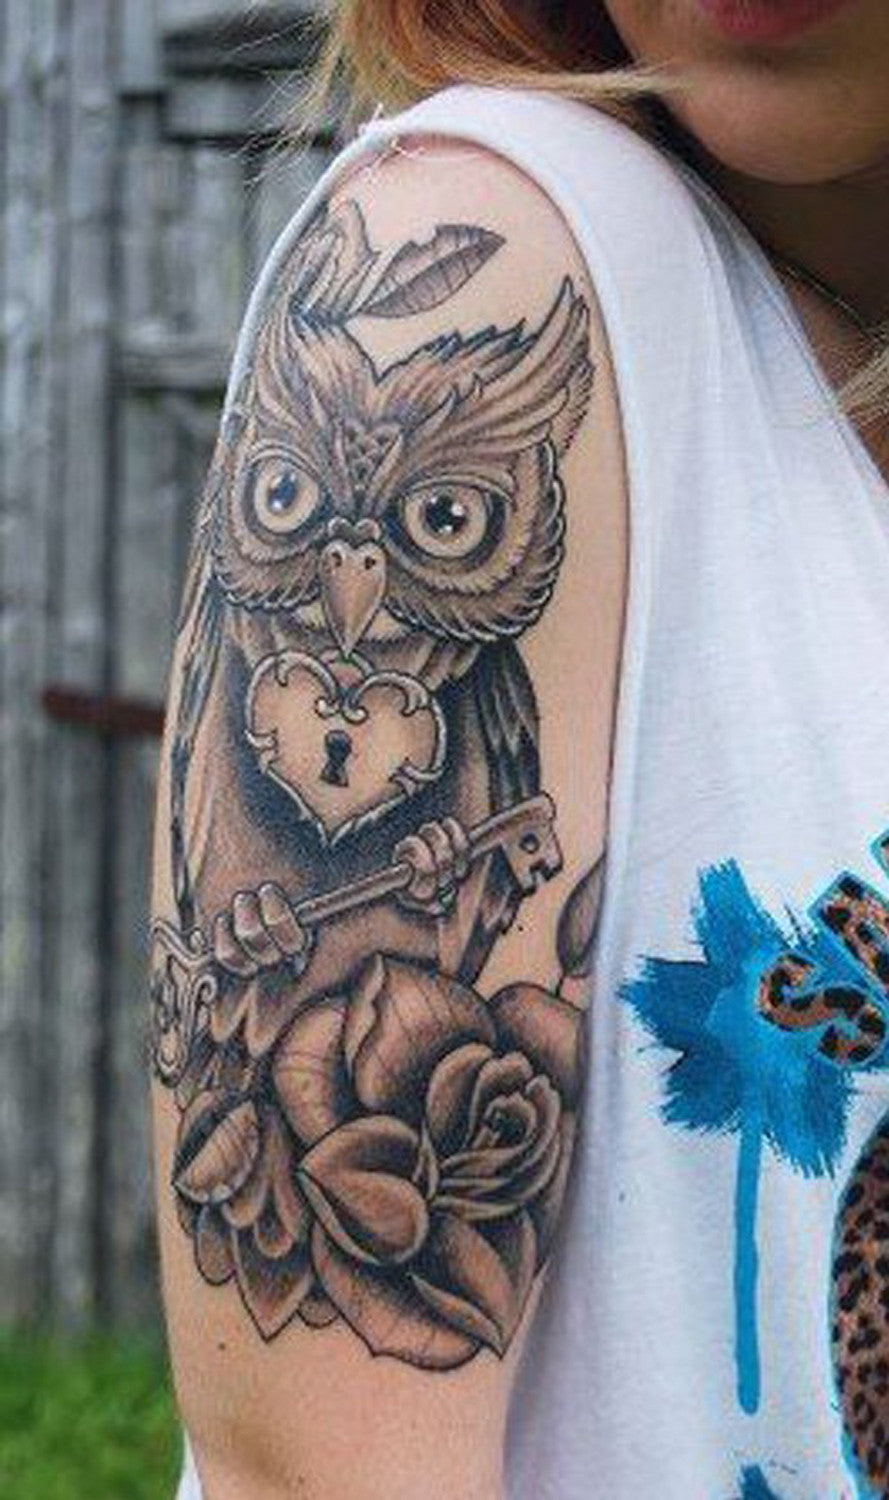 Large Geometric Barn Owl Arm Sleeve Tattoo Ideas for Women - MyBodiArt.com